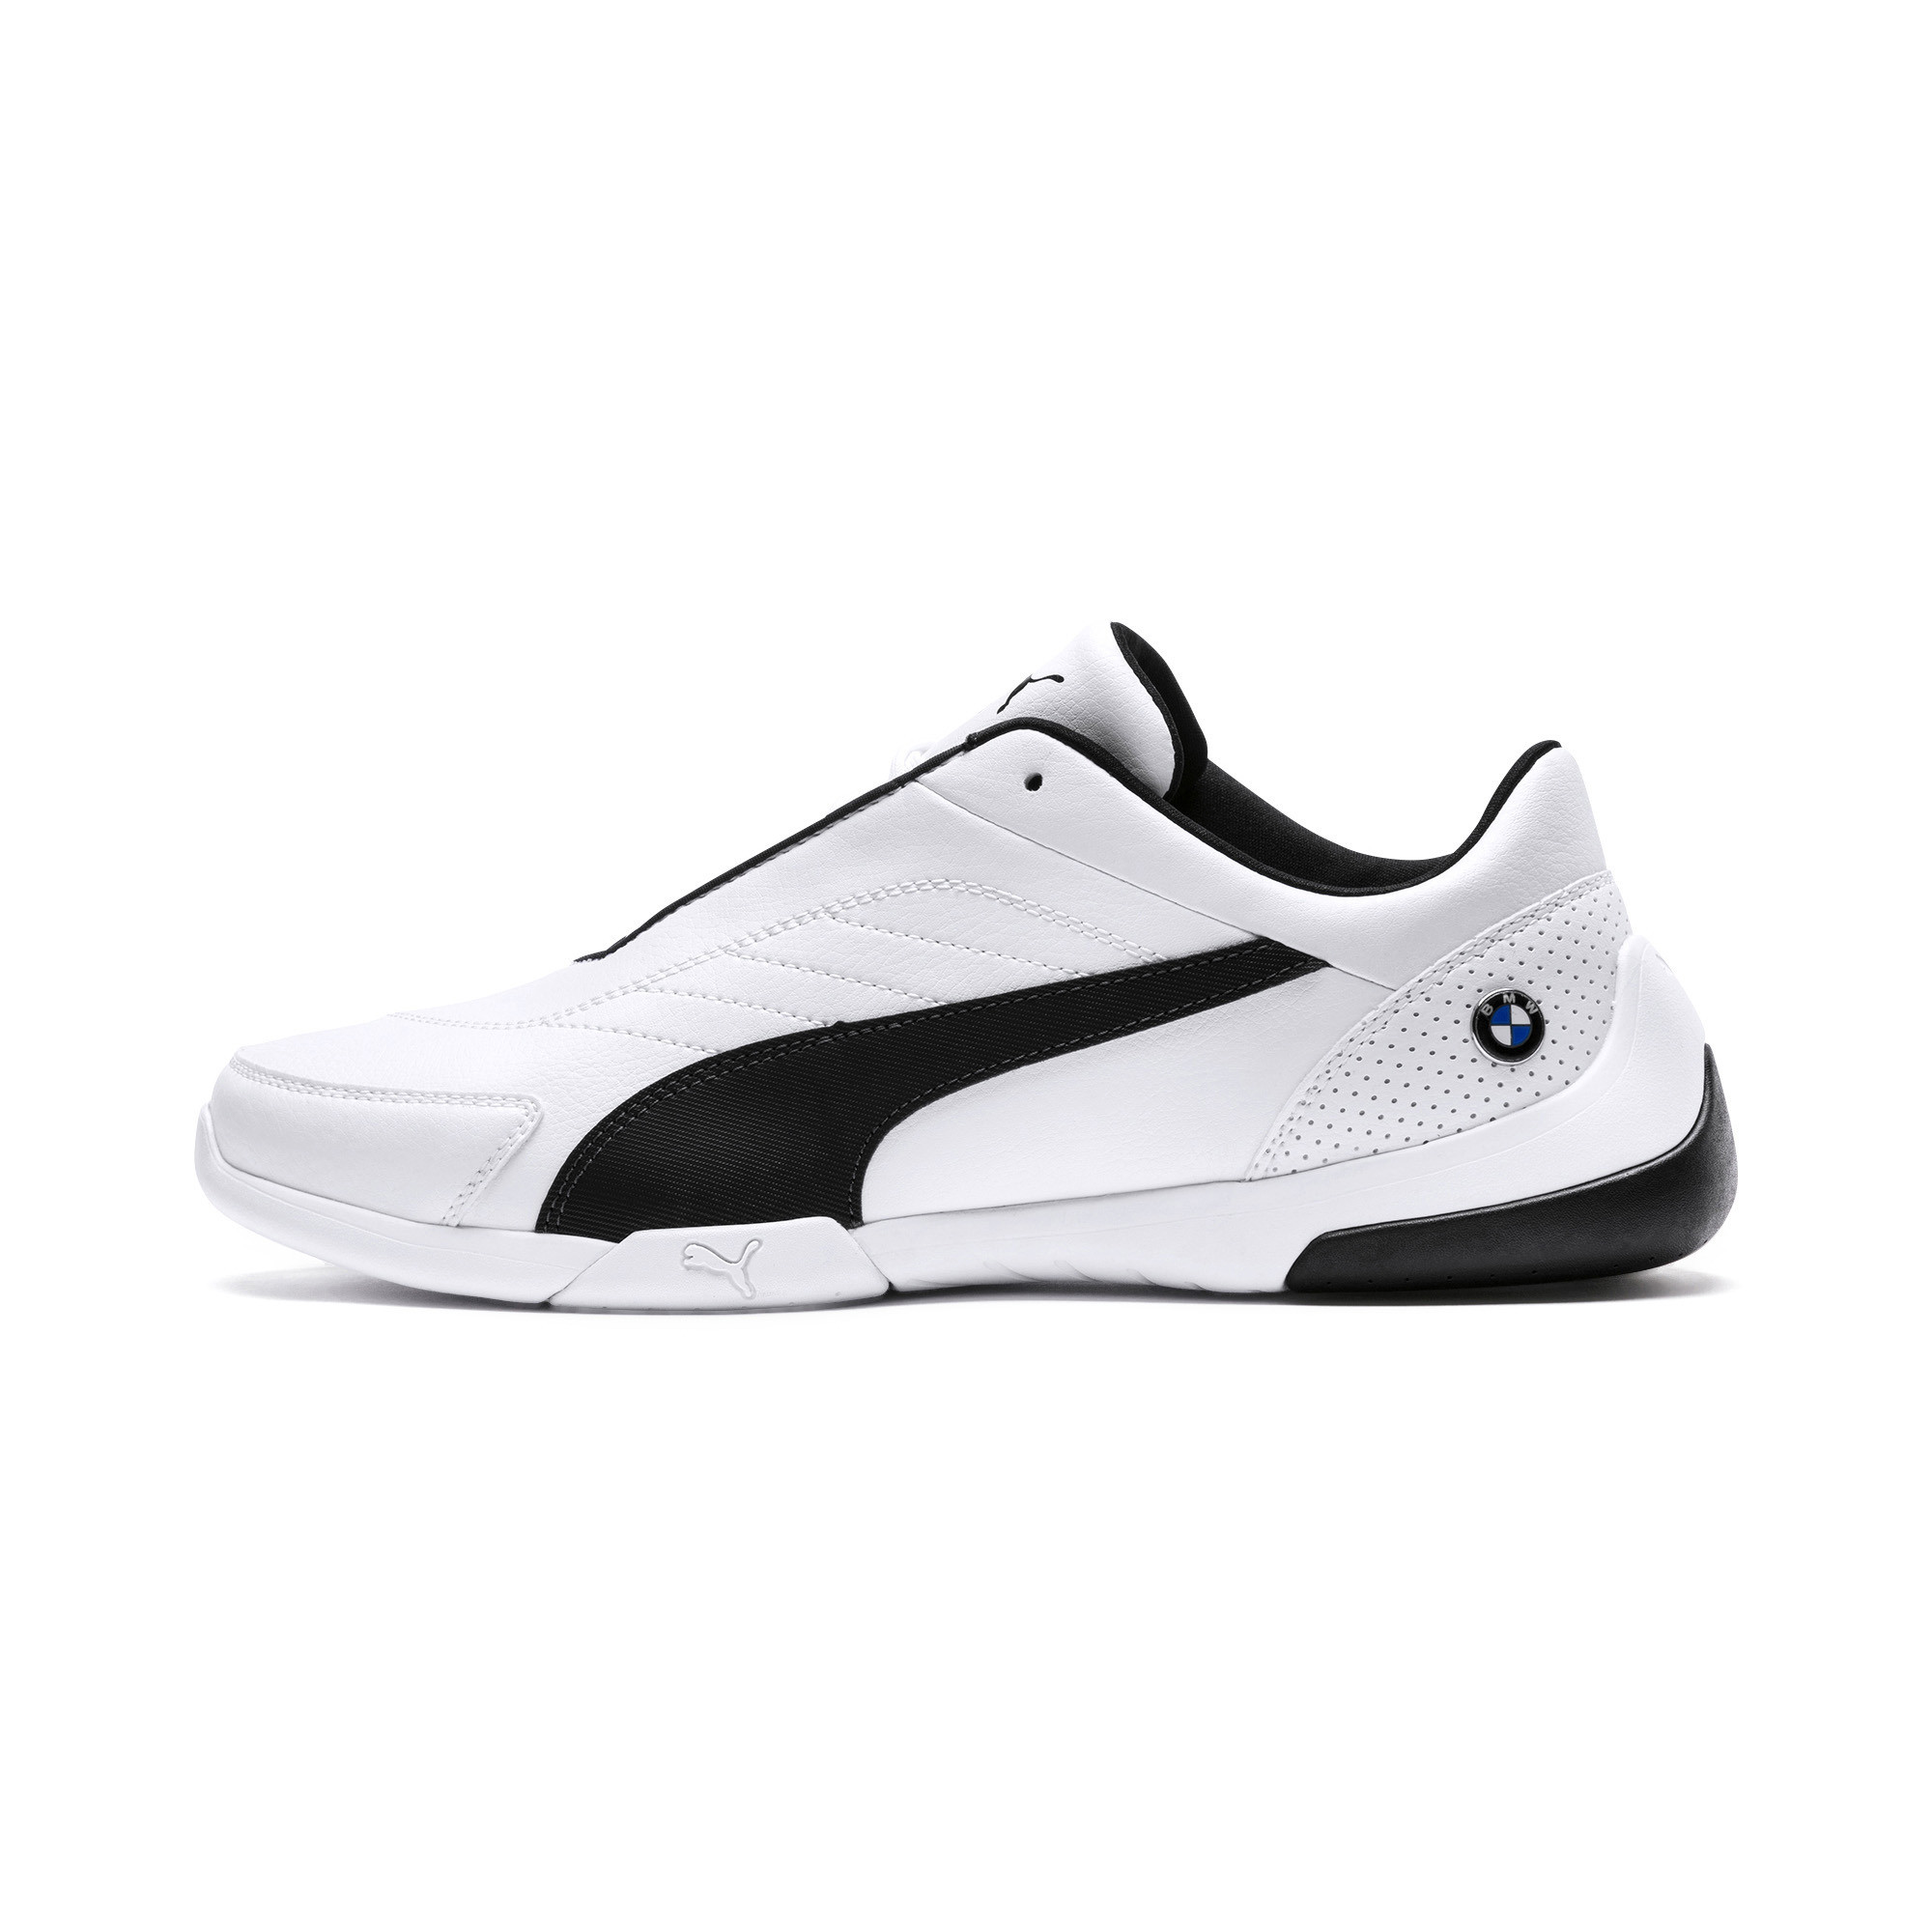 PUMA-BMW-M-Motorsport-Kart-Cat-III-Shoes-Men-Shoe-Auto thumbnail 12